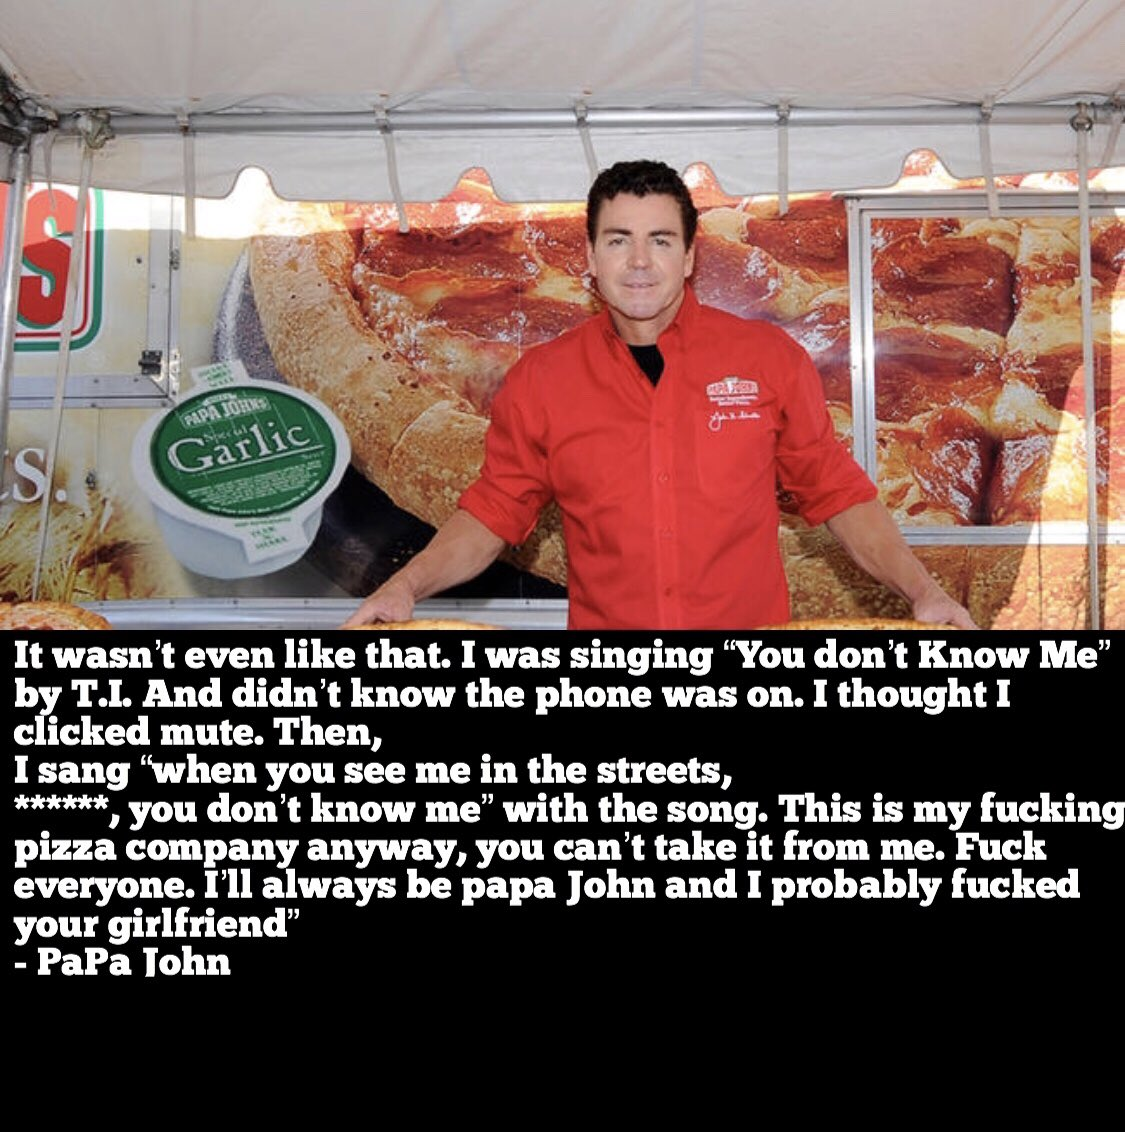 Papa John risking it all with this statement after being kicked out of his own company. This is crazy, I had no idea <br>http://pic.twitter.com/NXjRdUDspQ